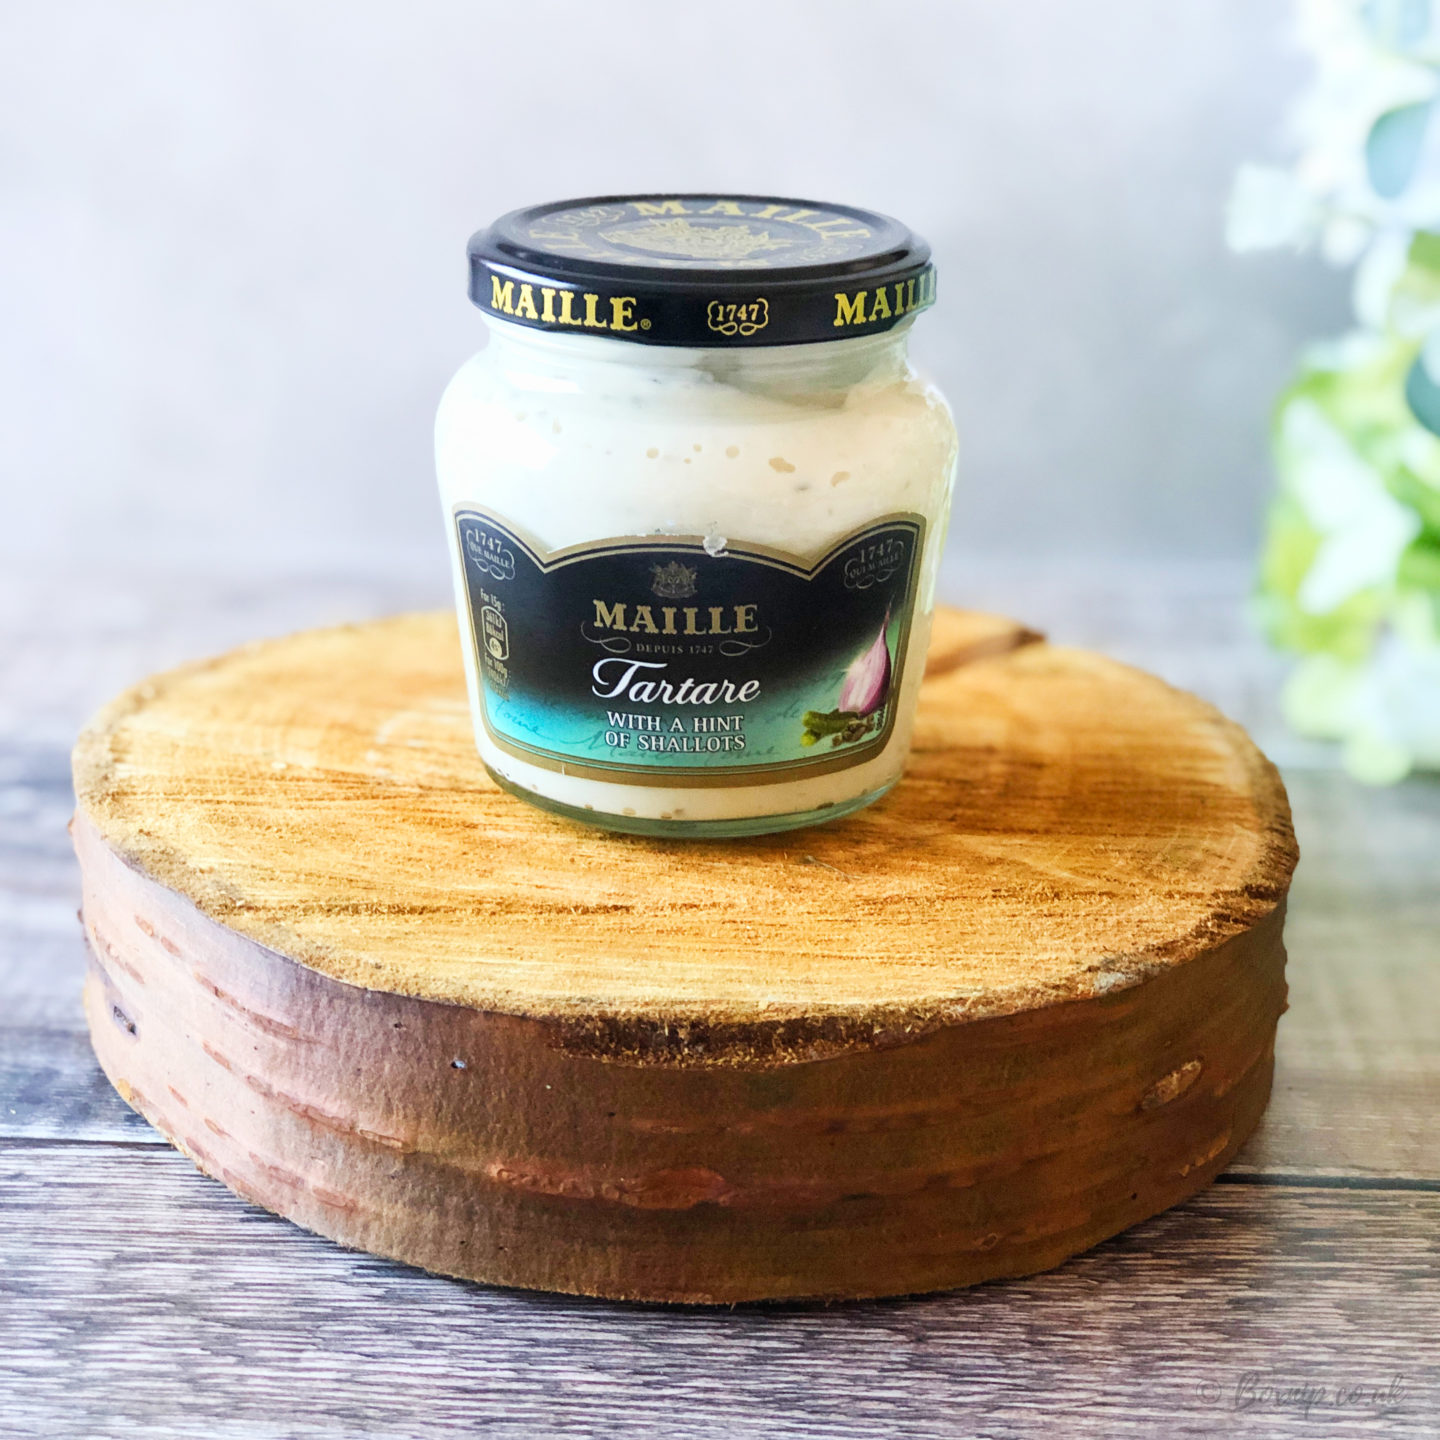 Maille Tartare Sauce - October 2019 Degusta Box